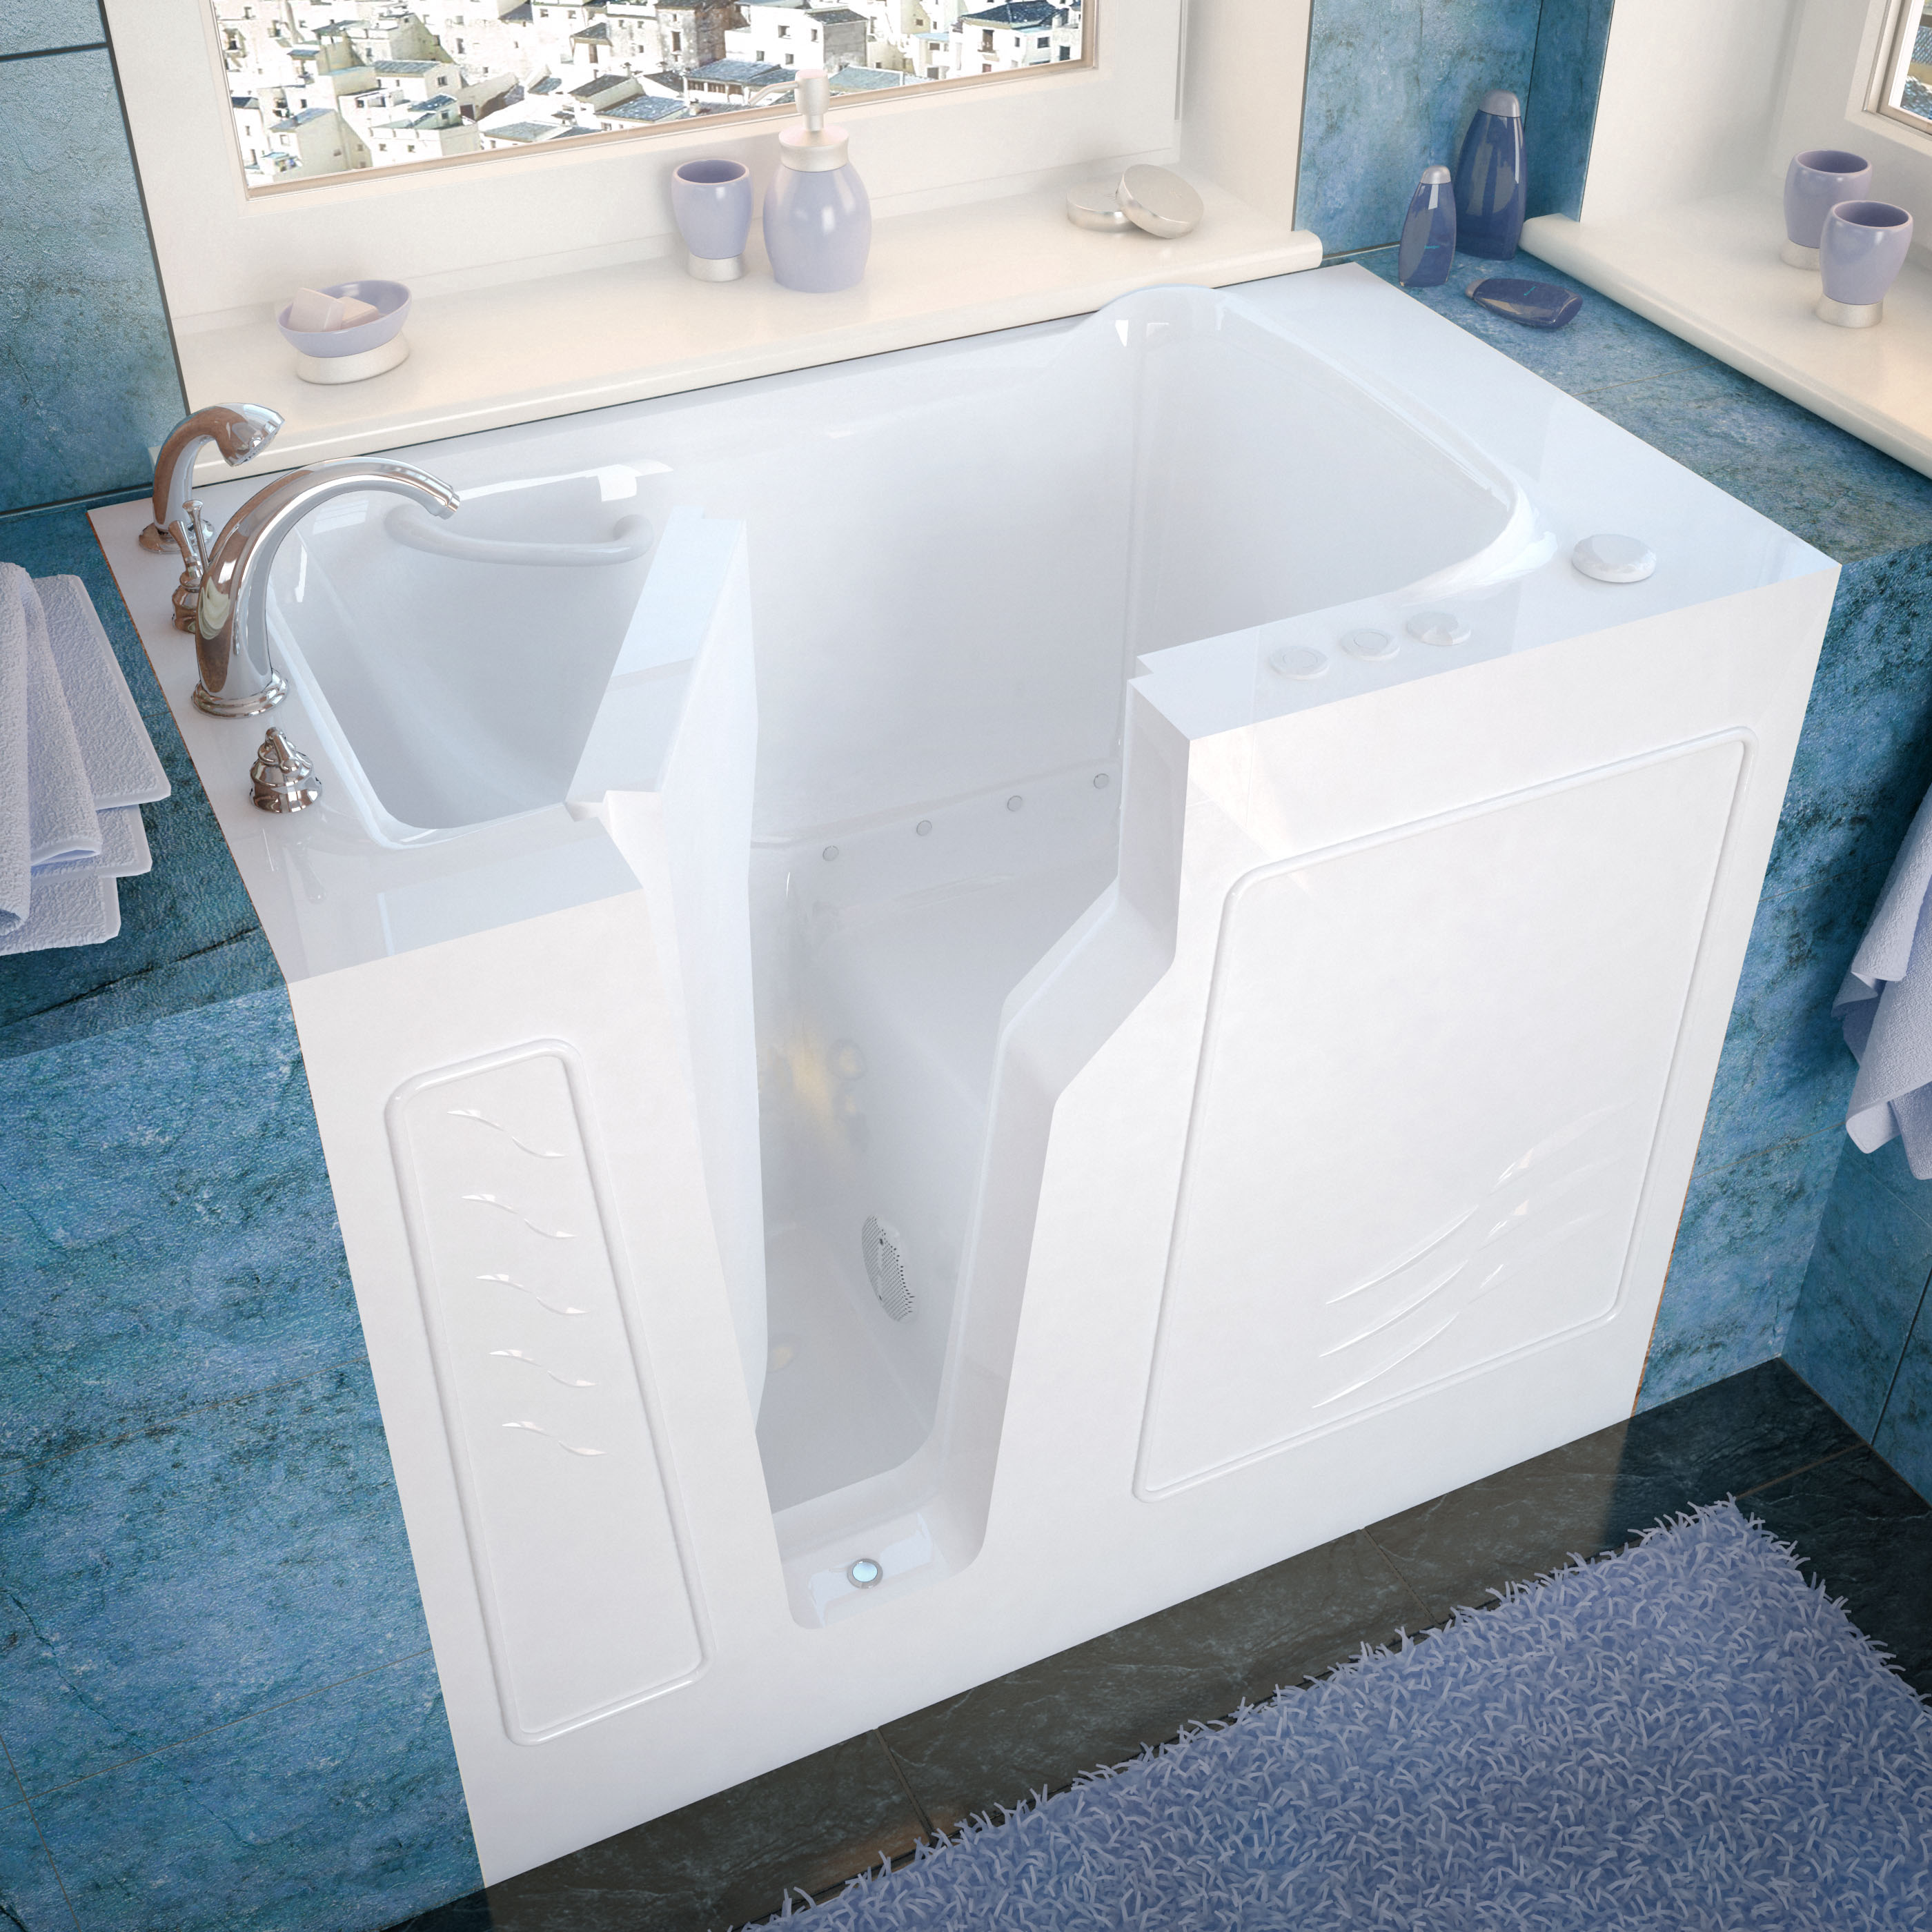 26x46 Left Drain White Air Jetted Walk-In Bathtub